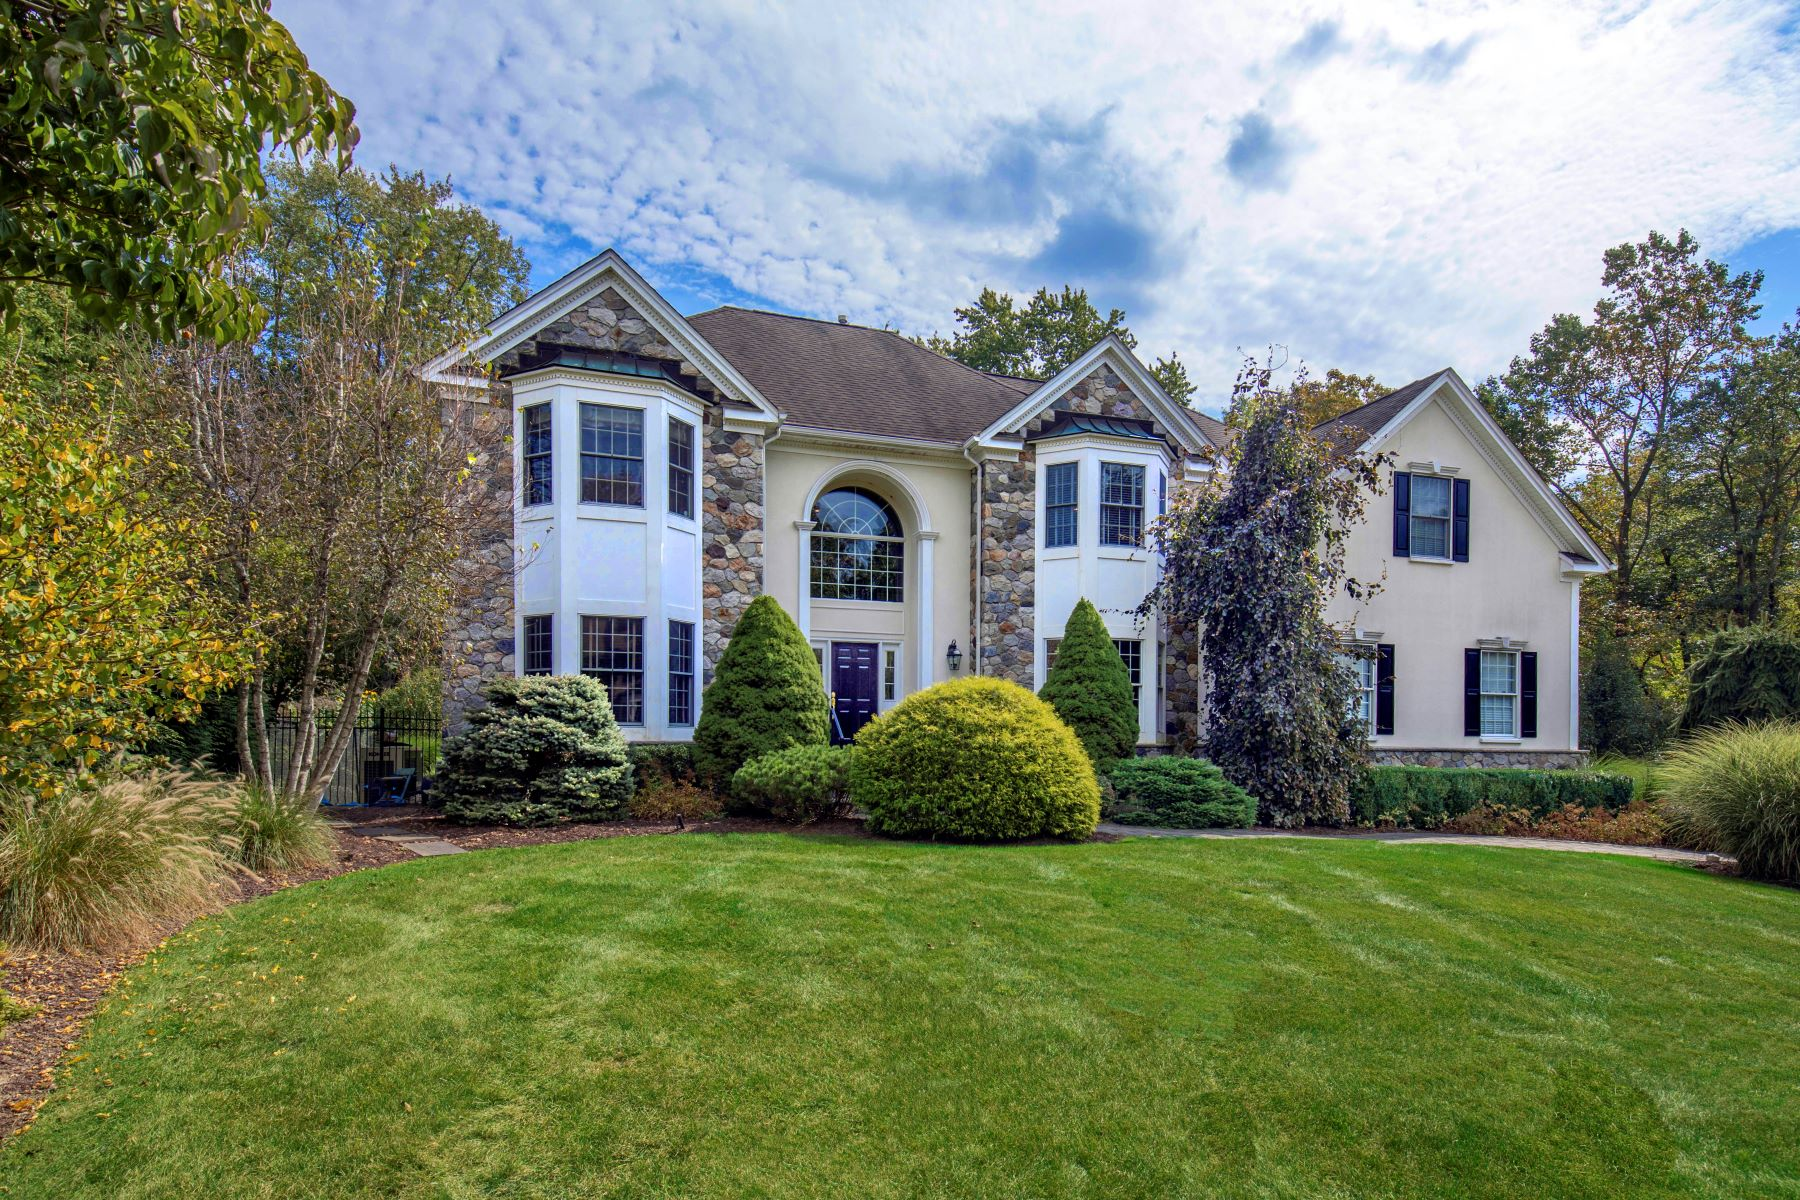 Single Family Homes for Active at Elegant Custom Colonial 24 Morrison Street Basking Ridge, New Jersey 07920 United States